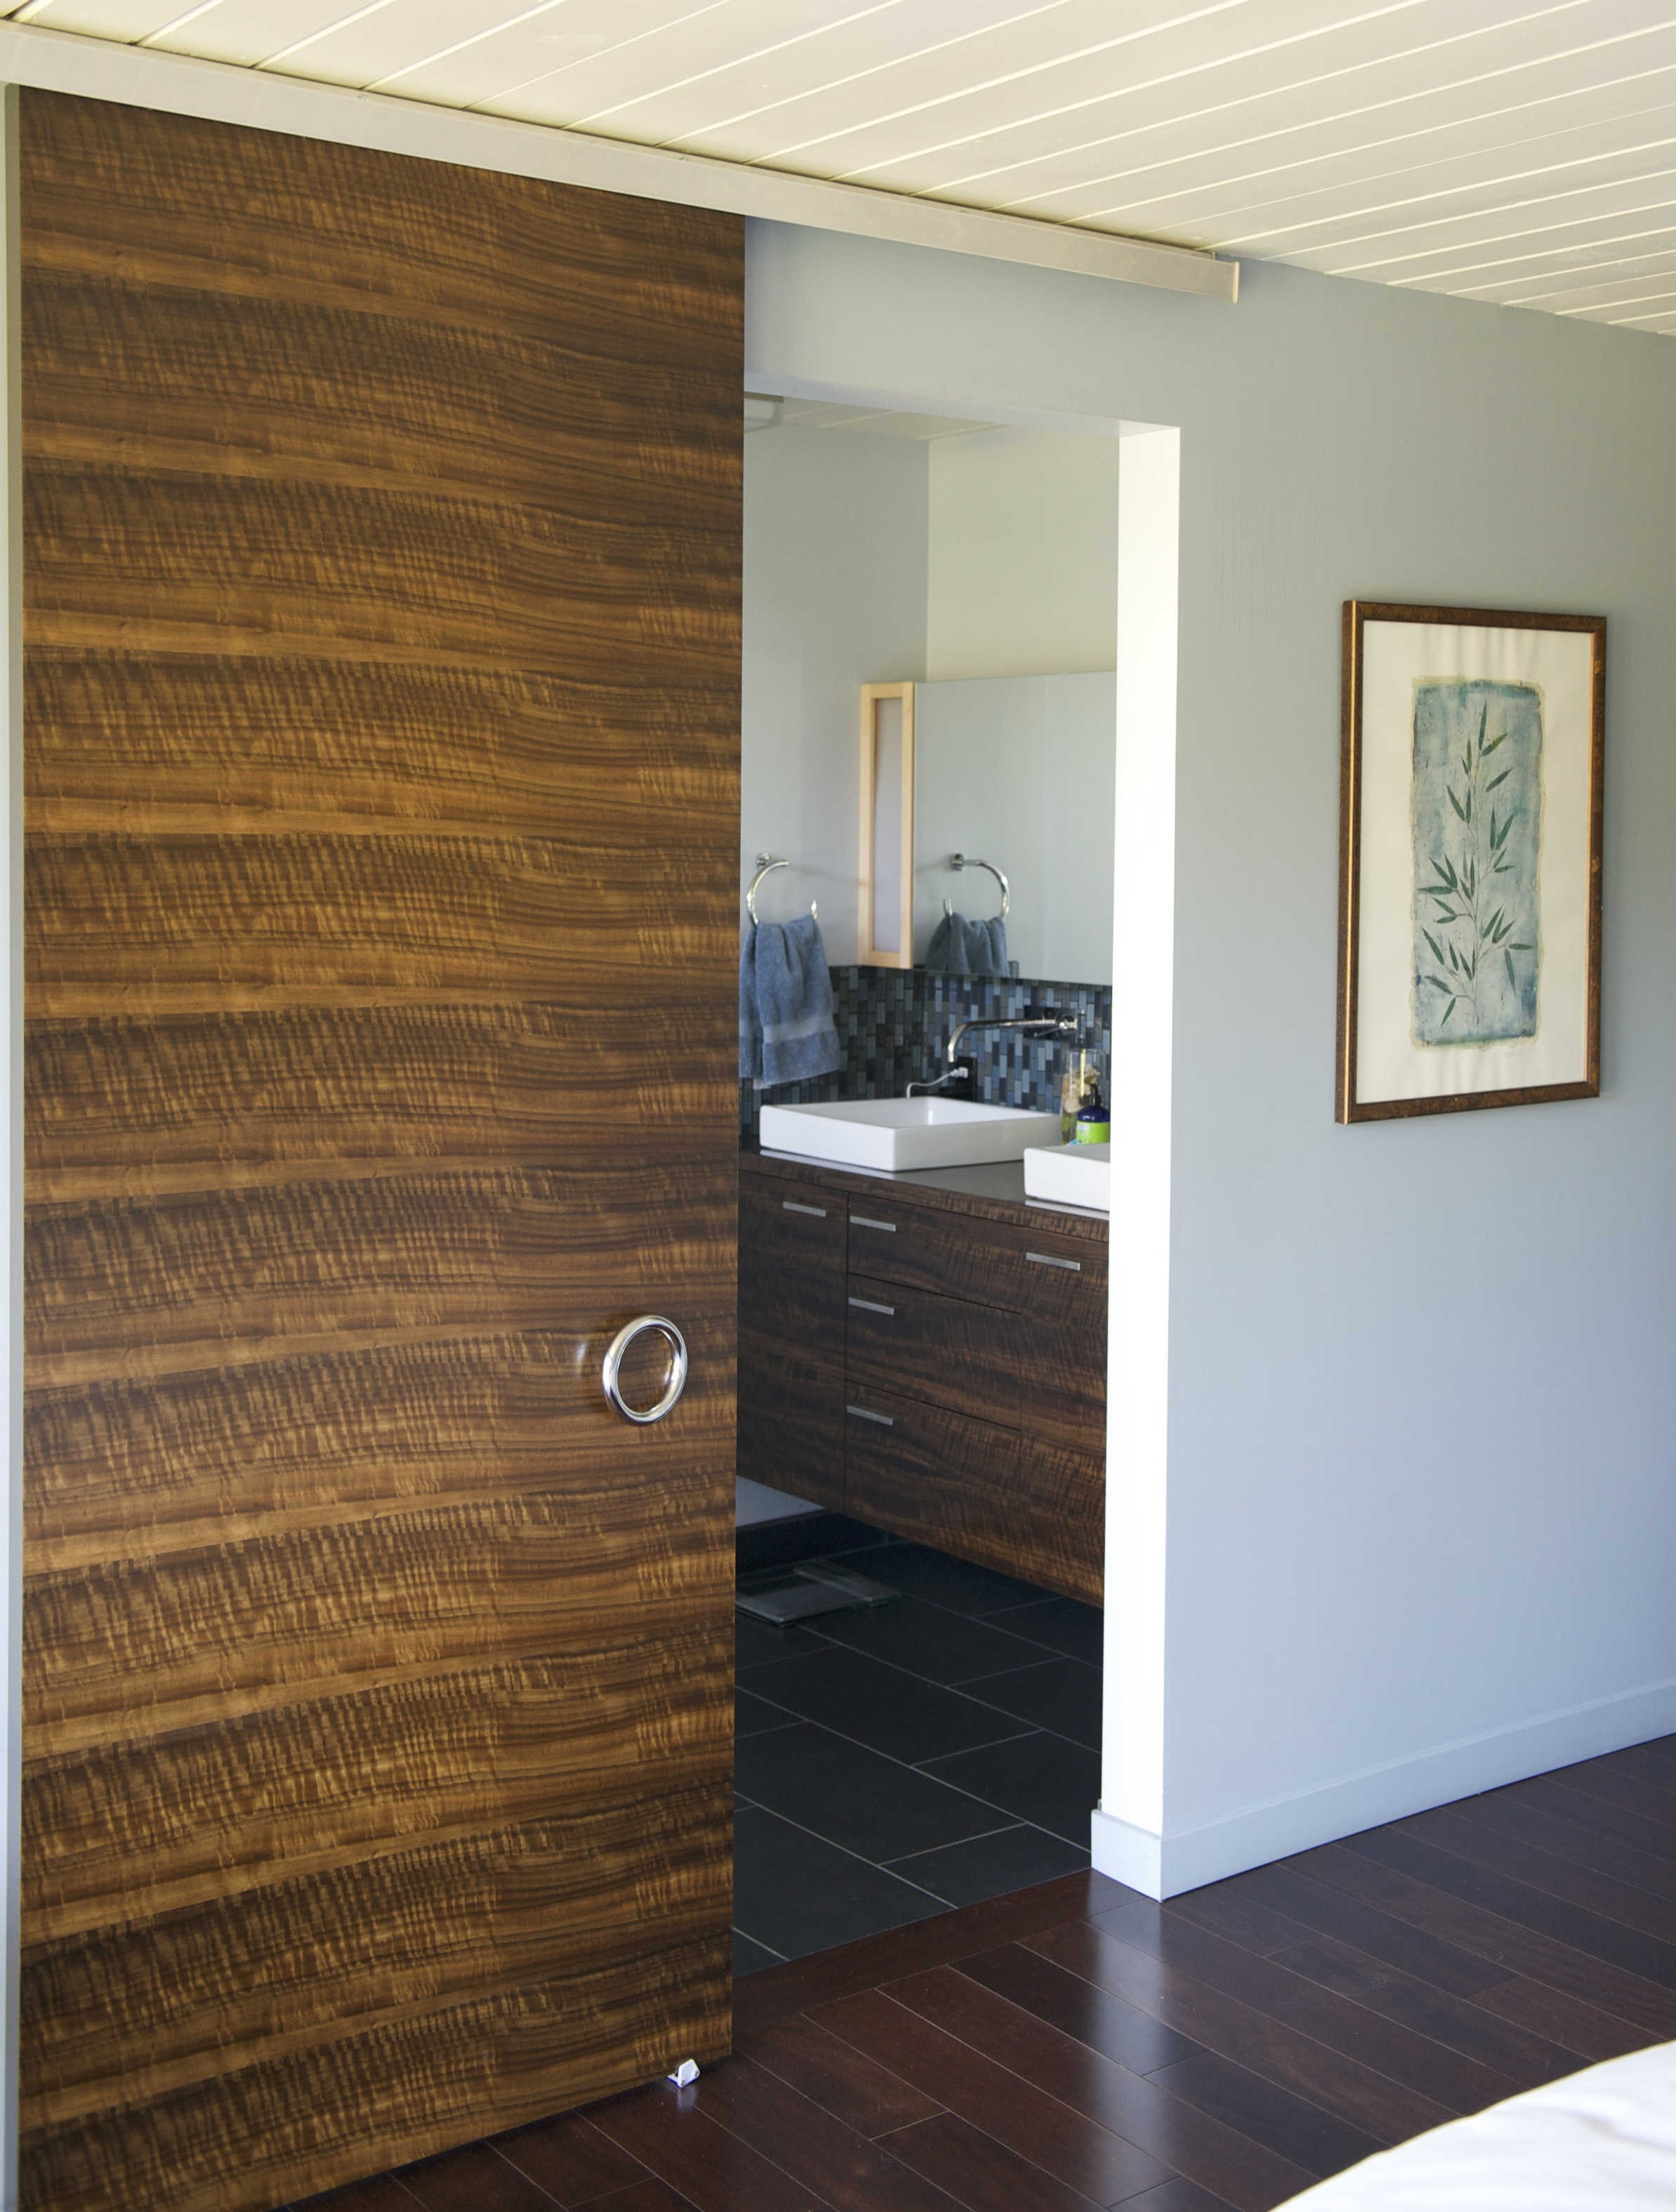 The master suite door, master bath door, and vanity are of fumed Eucalyptus. This is a process where the veneers are exposed to ammonia until they acquire the desired darkness. Too long exposure will turn them black. There is no dye or stain used in this process.